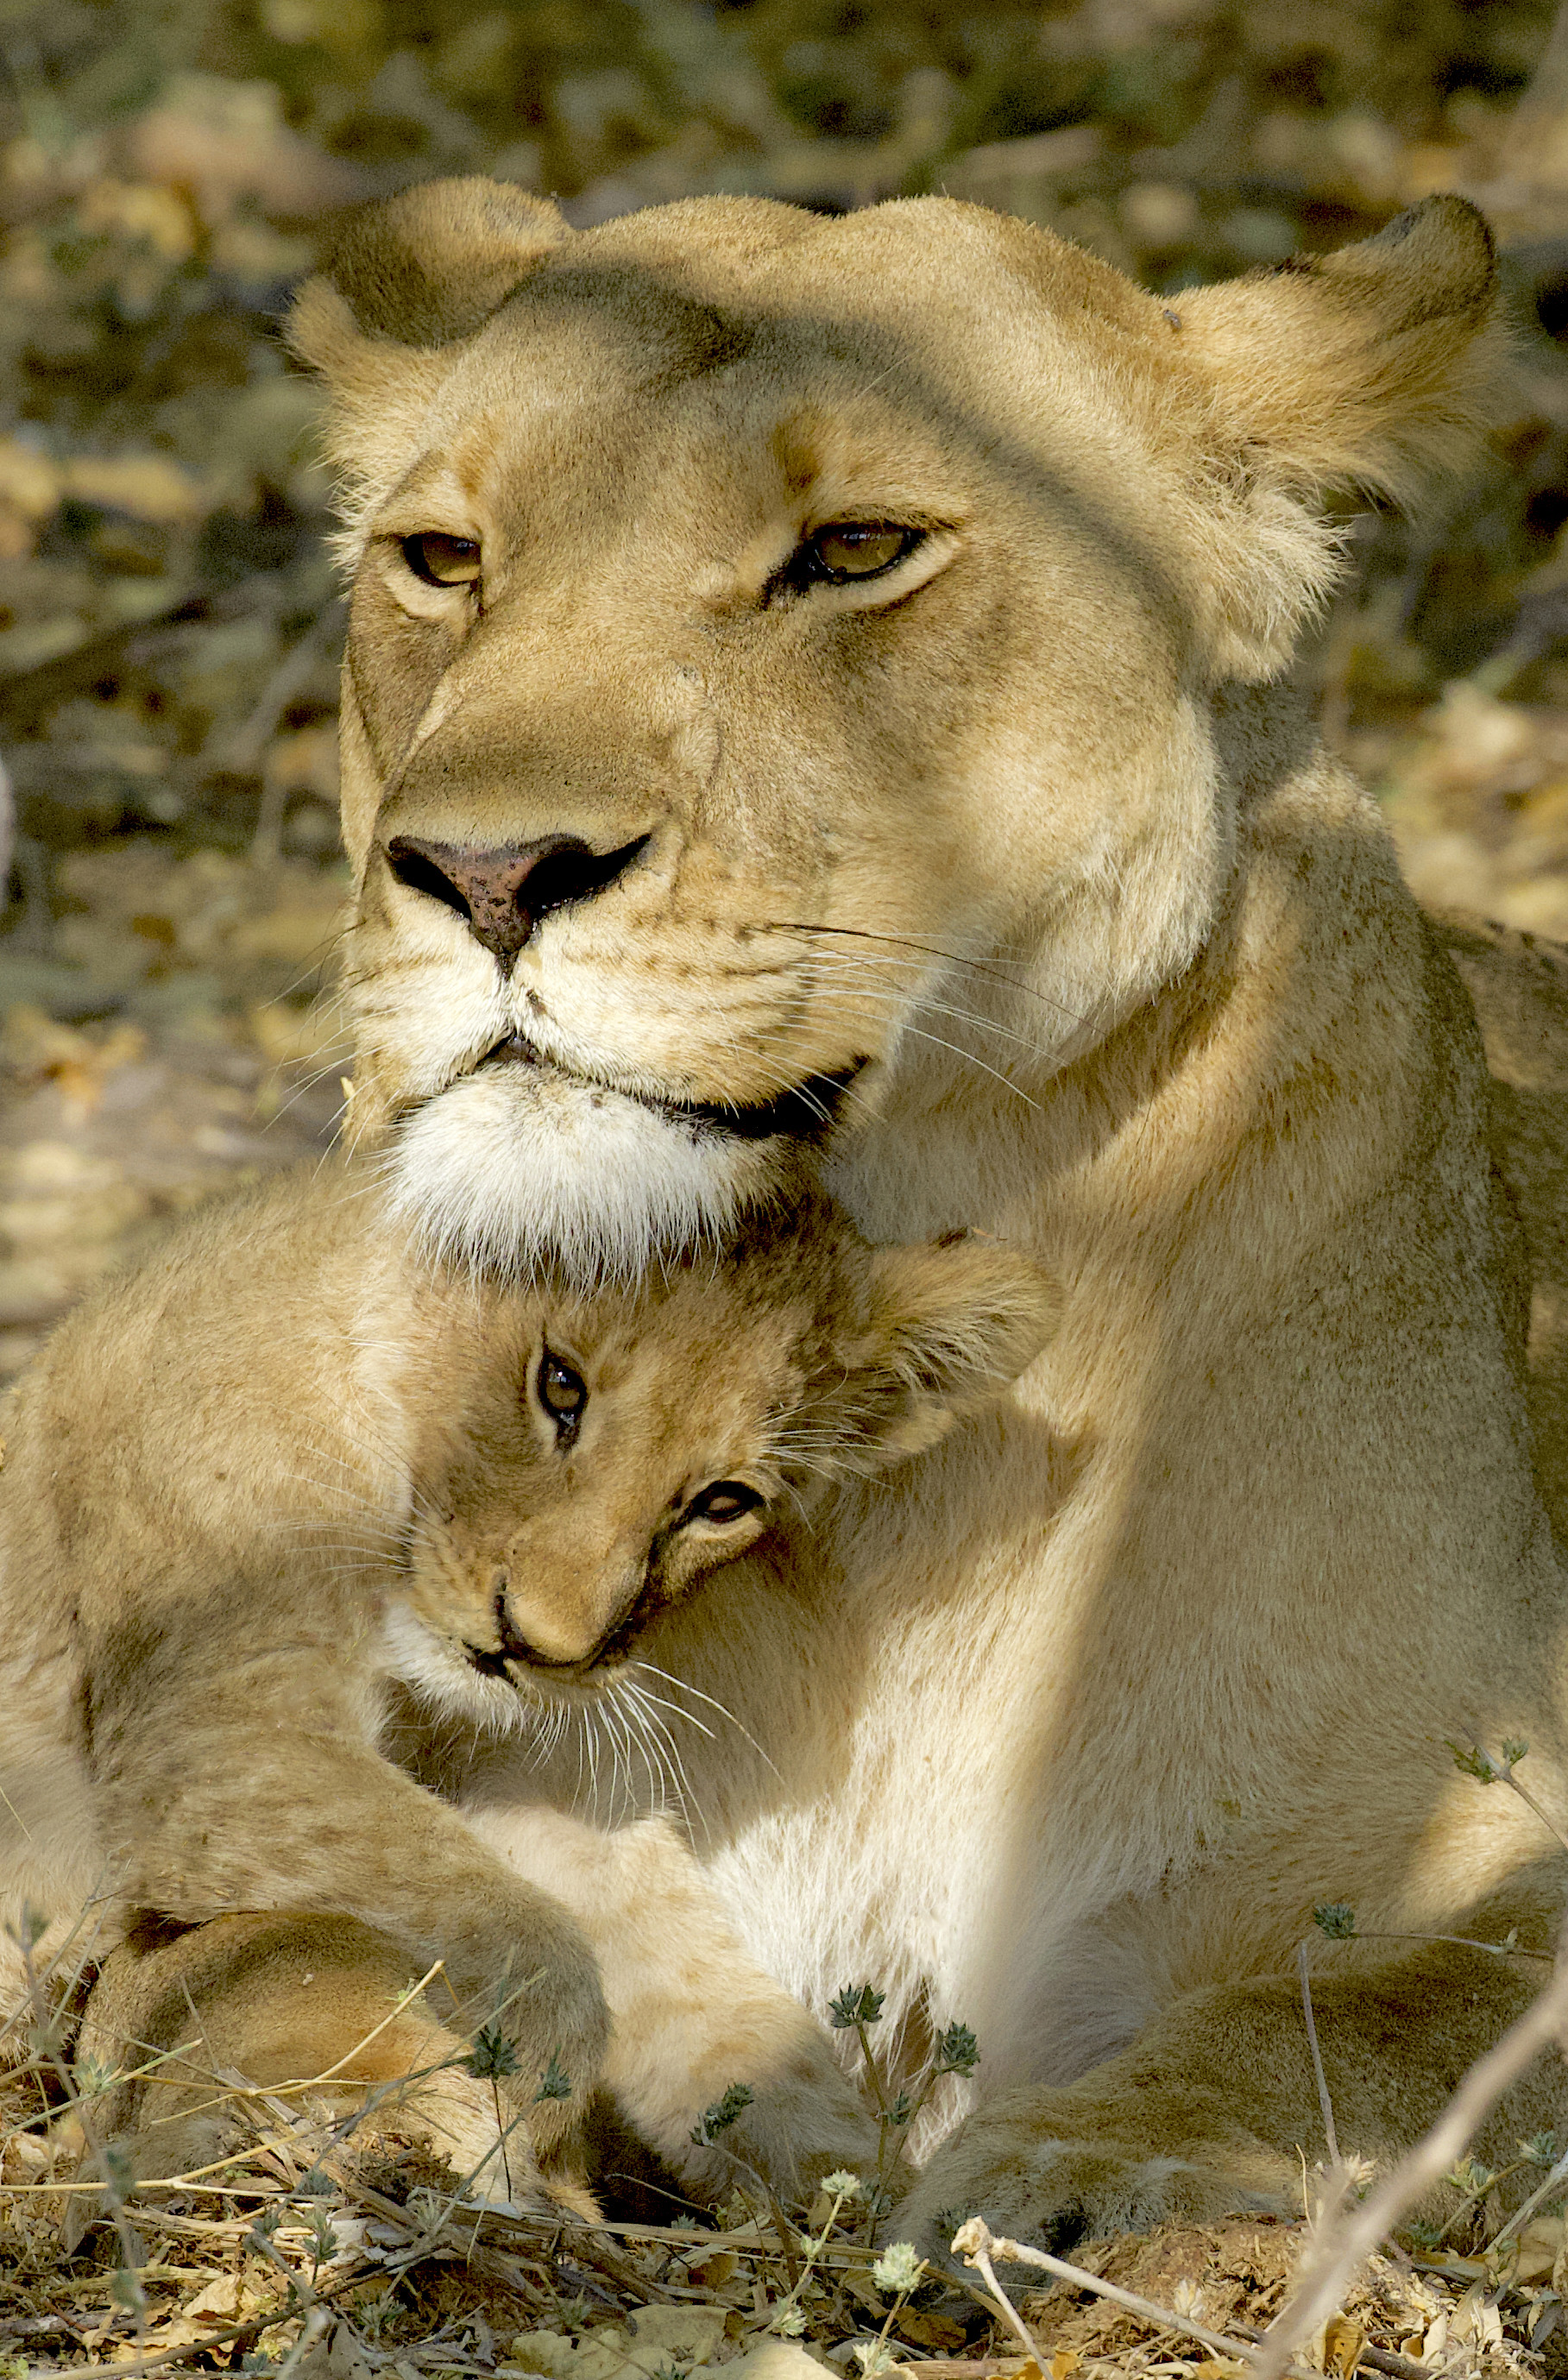 128929 download wallpaper Animals, Lioness, Lion Cub, Lion, Young, Joey, Predator screensavers and pictures for free